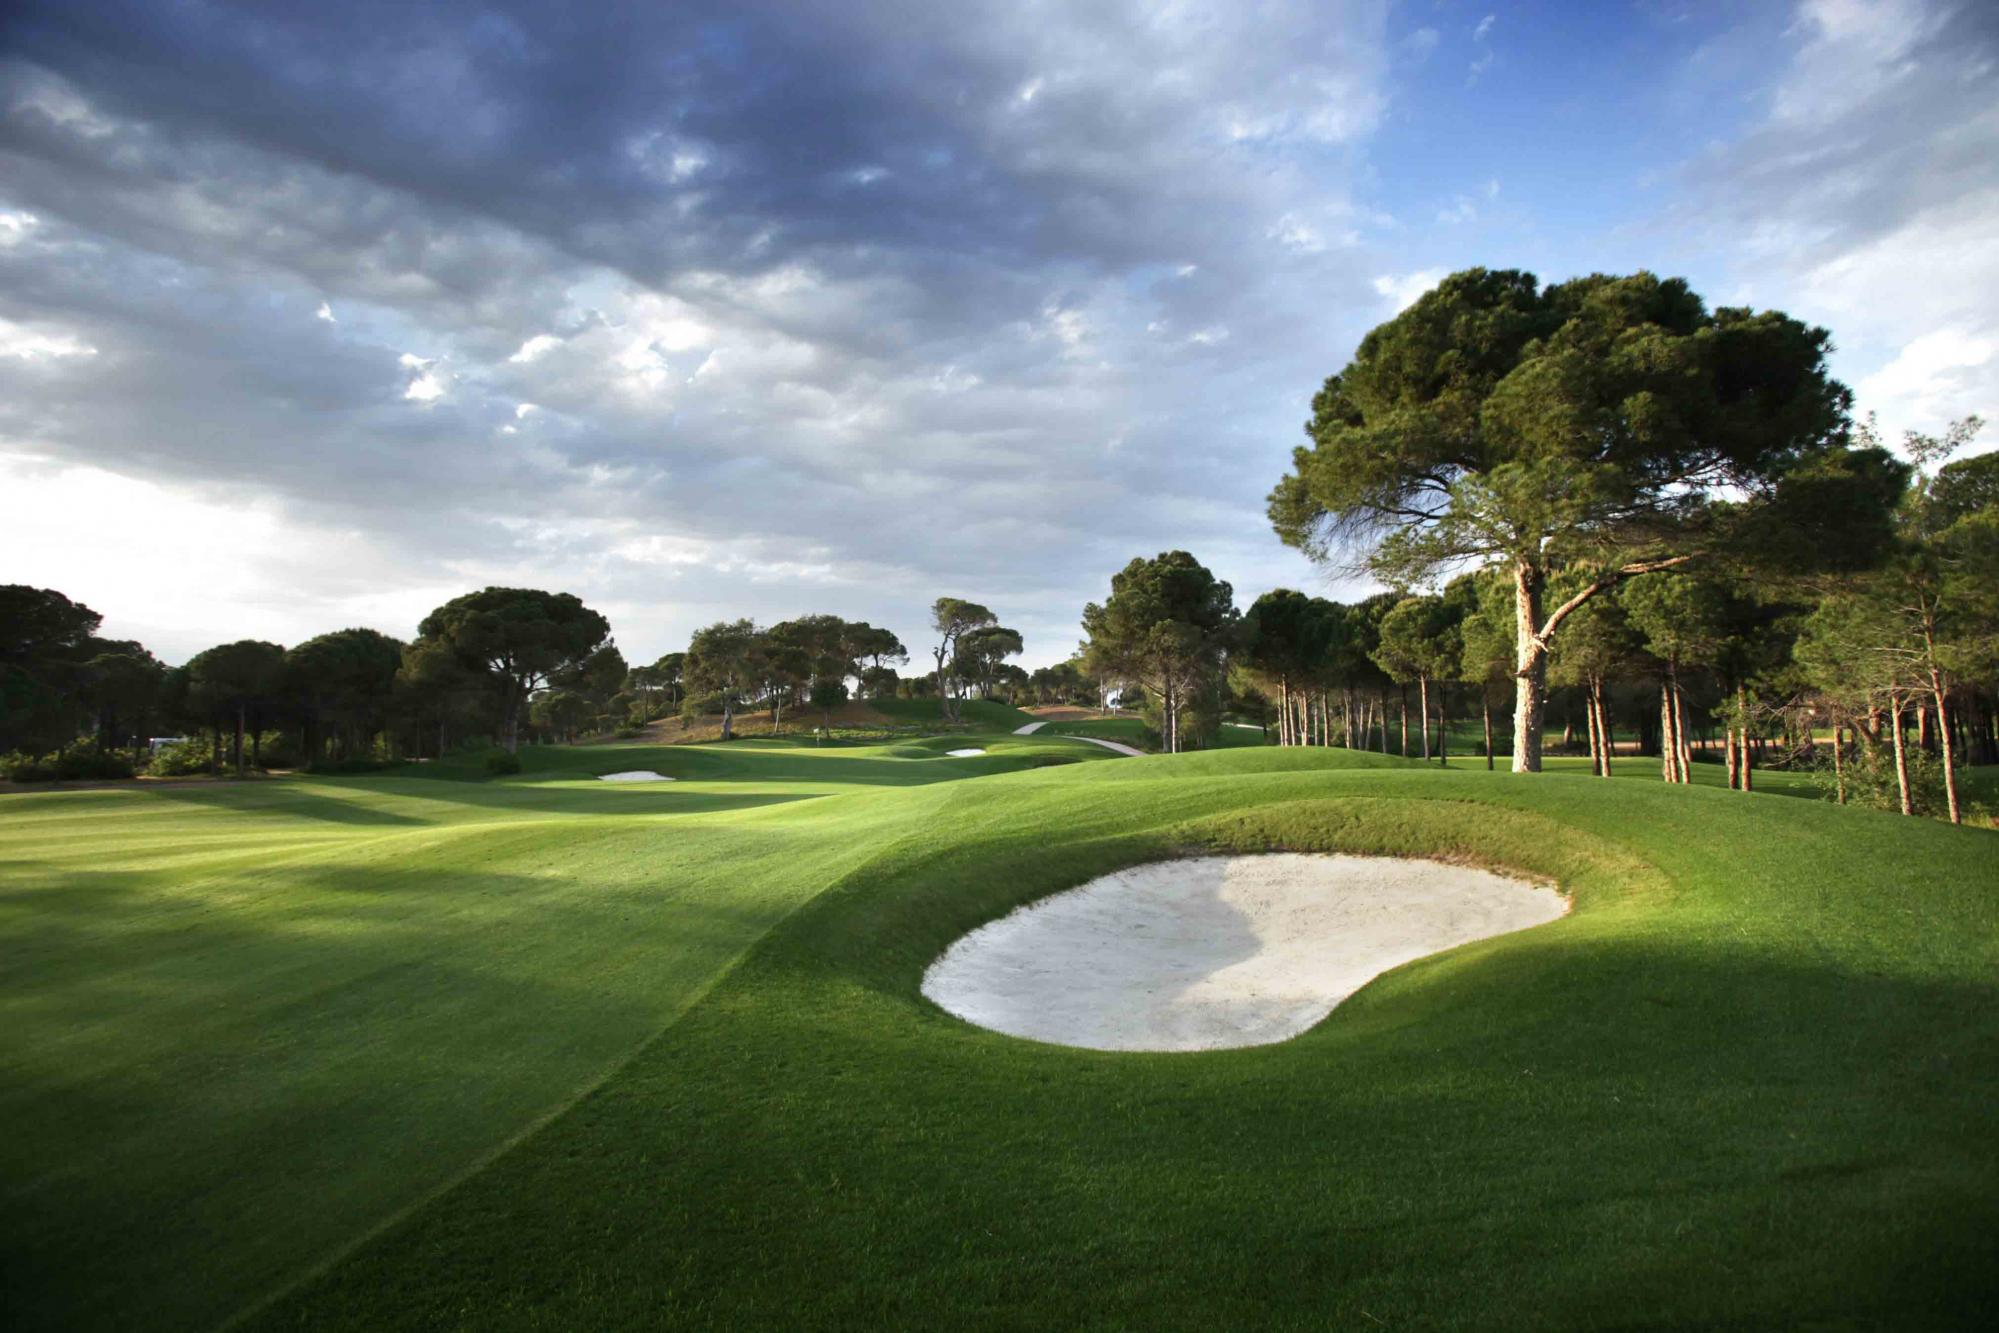 All The Montgomerie Maxx Royal Golf Club's scenic golf course in vibrant Belek.